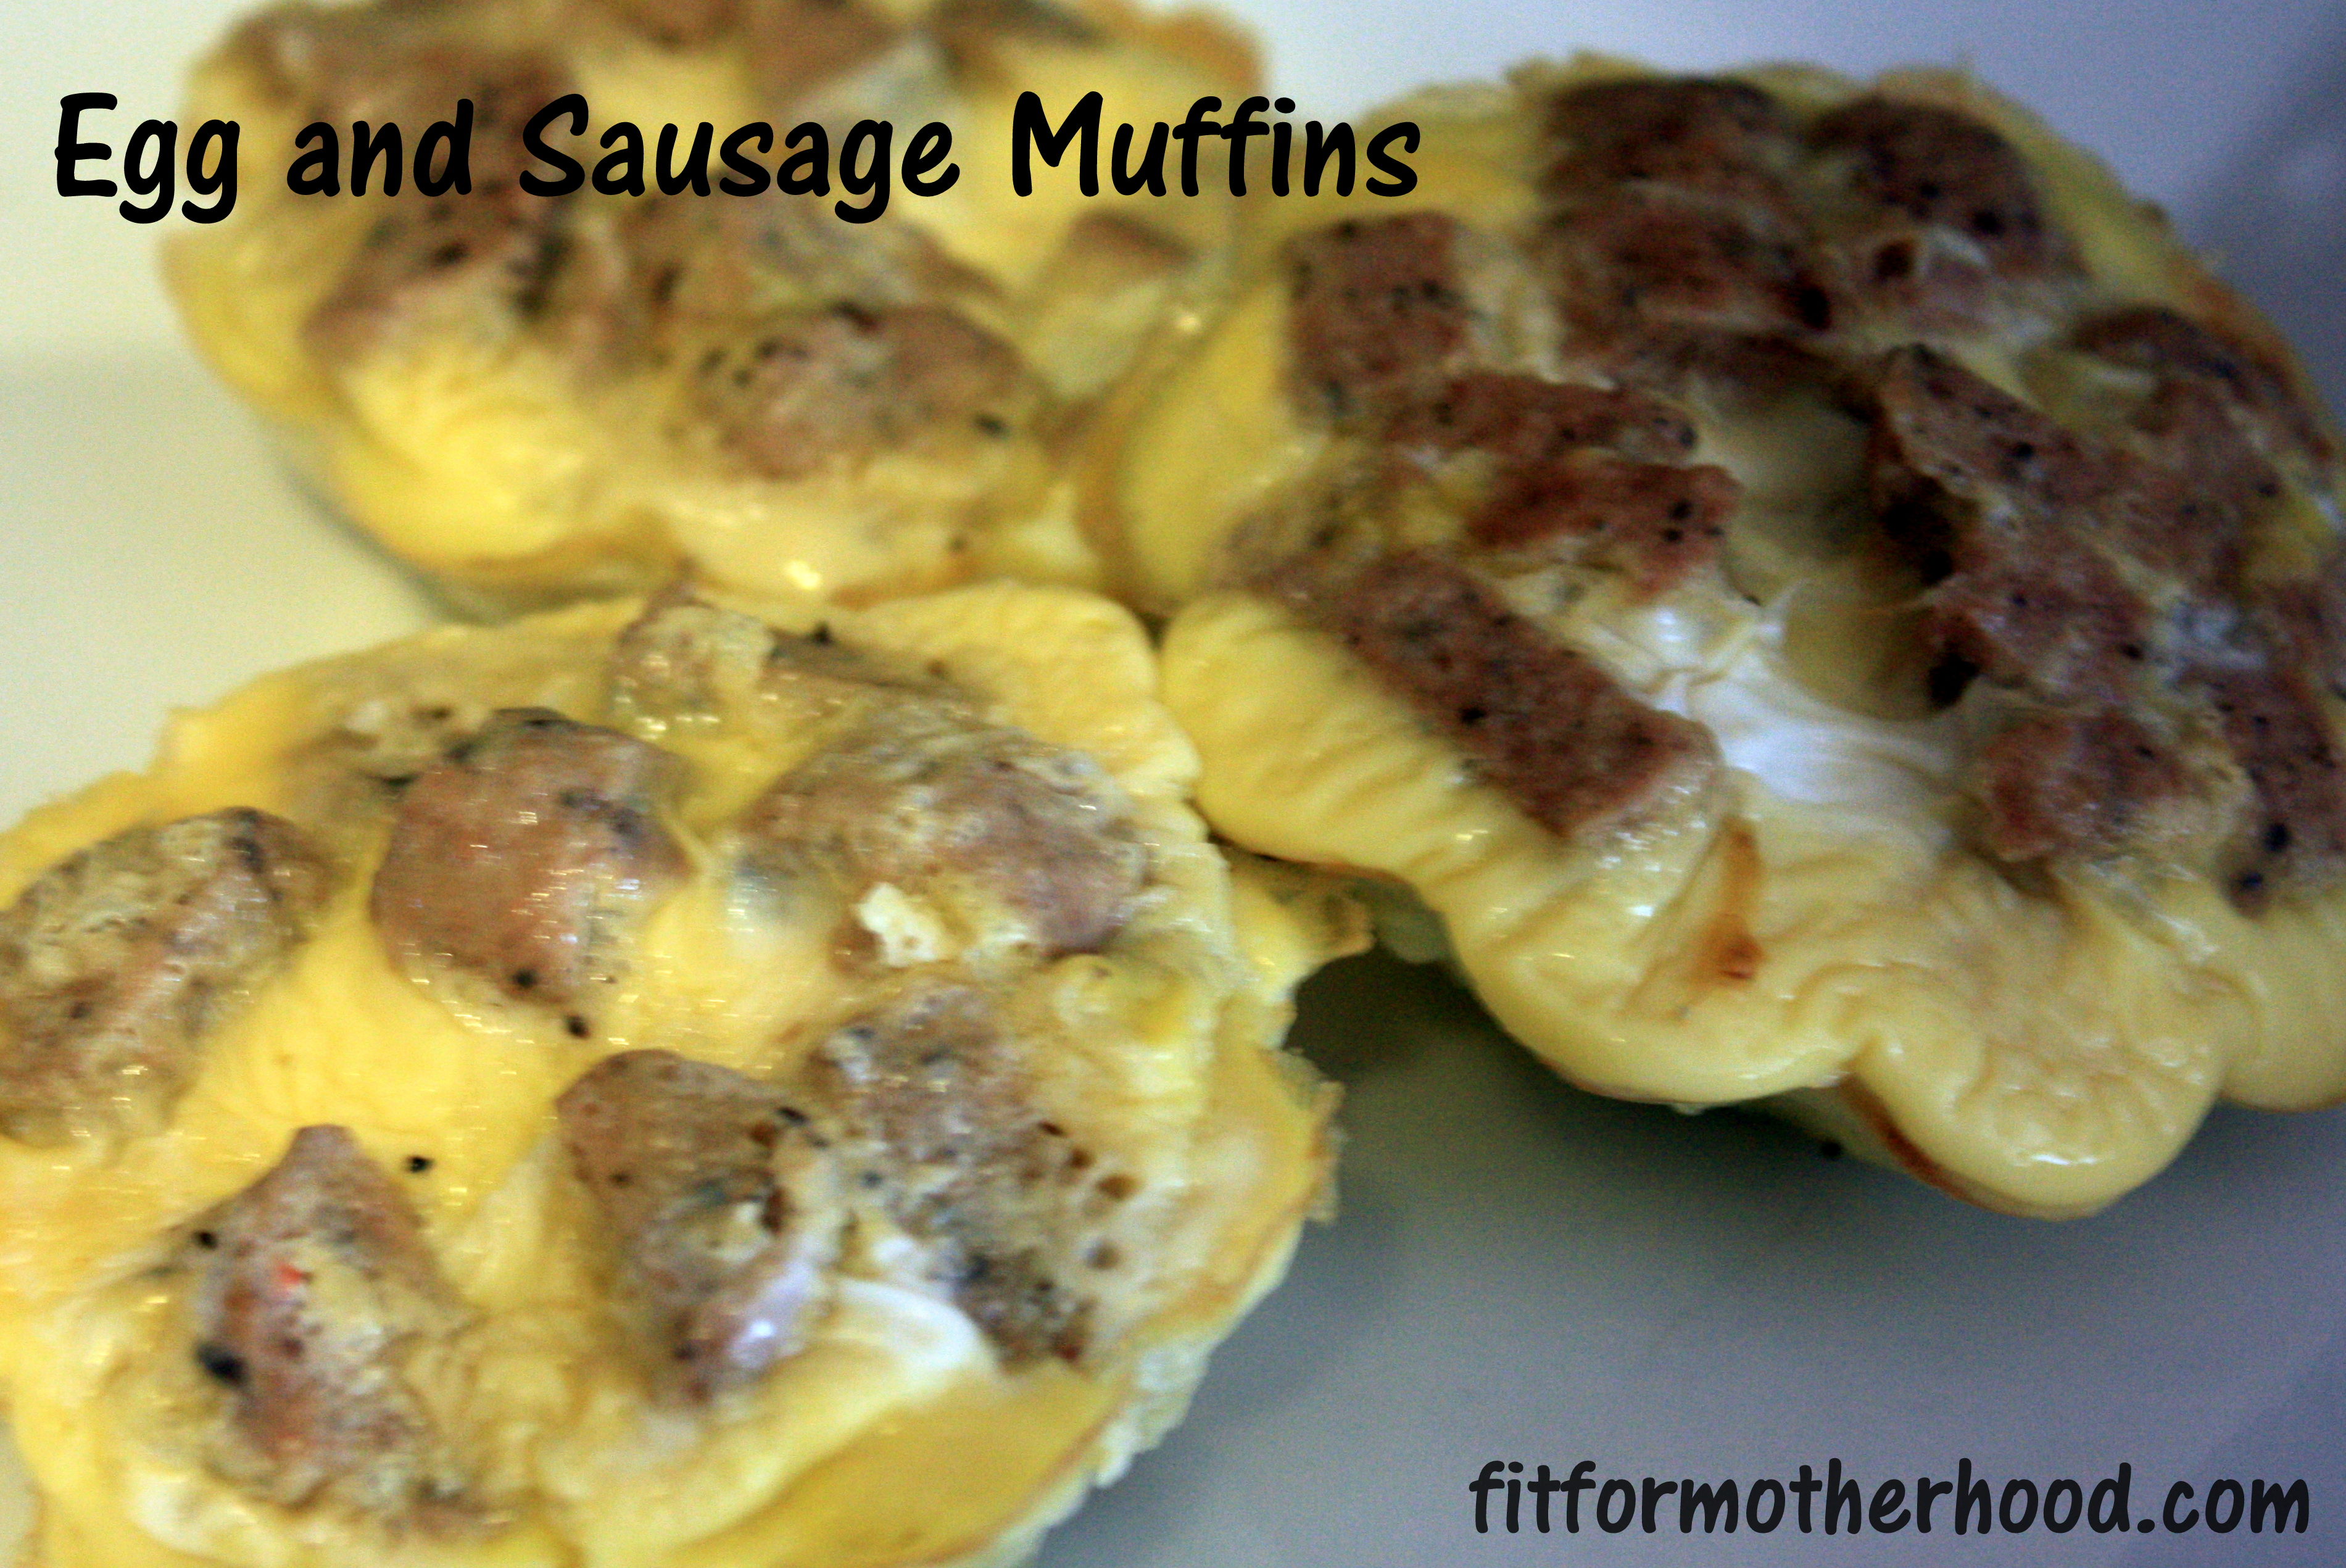 WIAW # 77 – Egg and Sausage Muffins